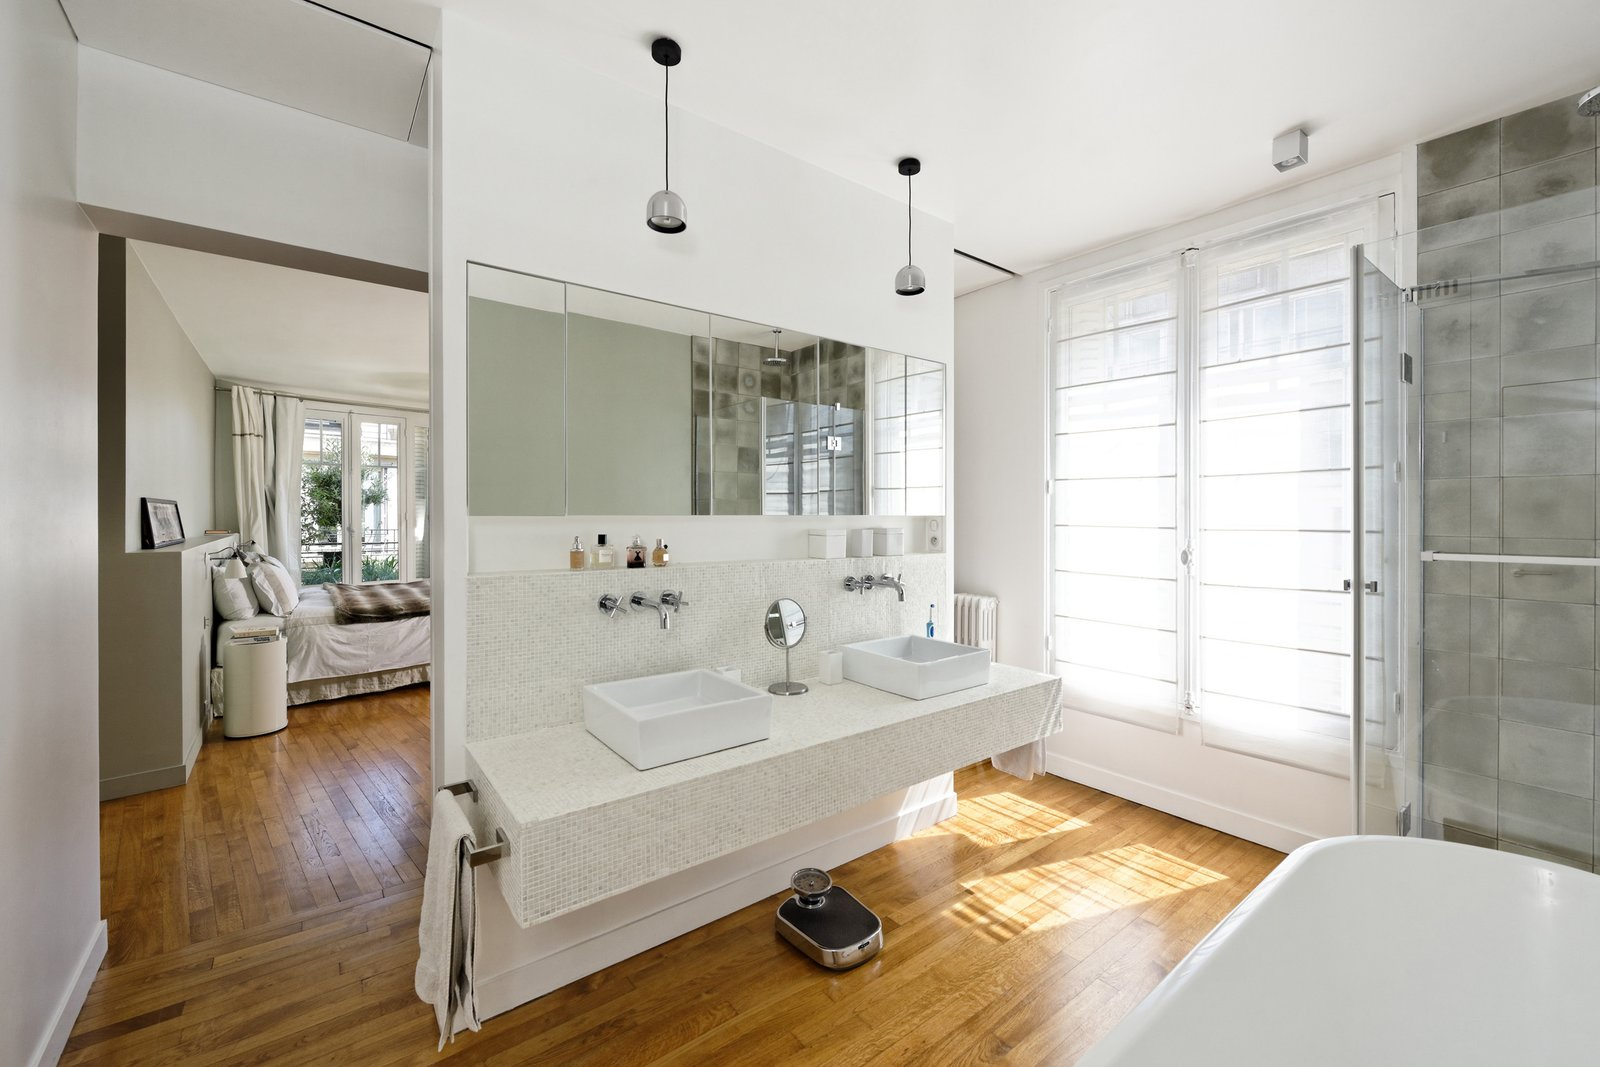 "Bath Room, Pendant Lighting, Vessel Sink, Mosaic Tile Wall, Freestanding Tub, Light Hardwood Floor, Corner Shower, and Tile Counter ""The old living room and balcony on the sixth floor were transformed into the master bedroom with an en-suite open bathroom,"" Hammer said. Flos lighting illuminates the space above the vanity.  Photo 3 of 11 in 10 Dreamy Parisian Homes from How Many Apartments Does it Take to Make One Home?"